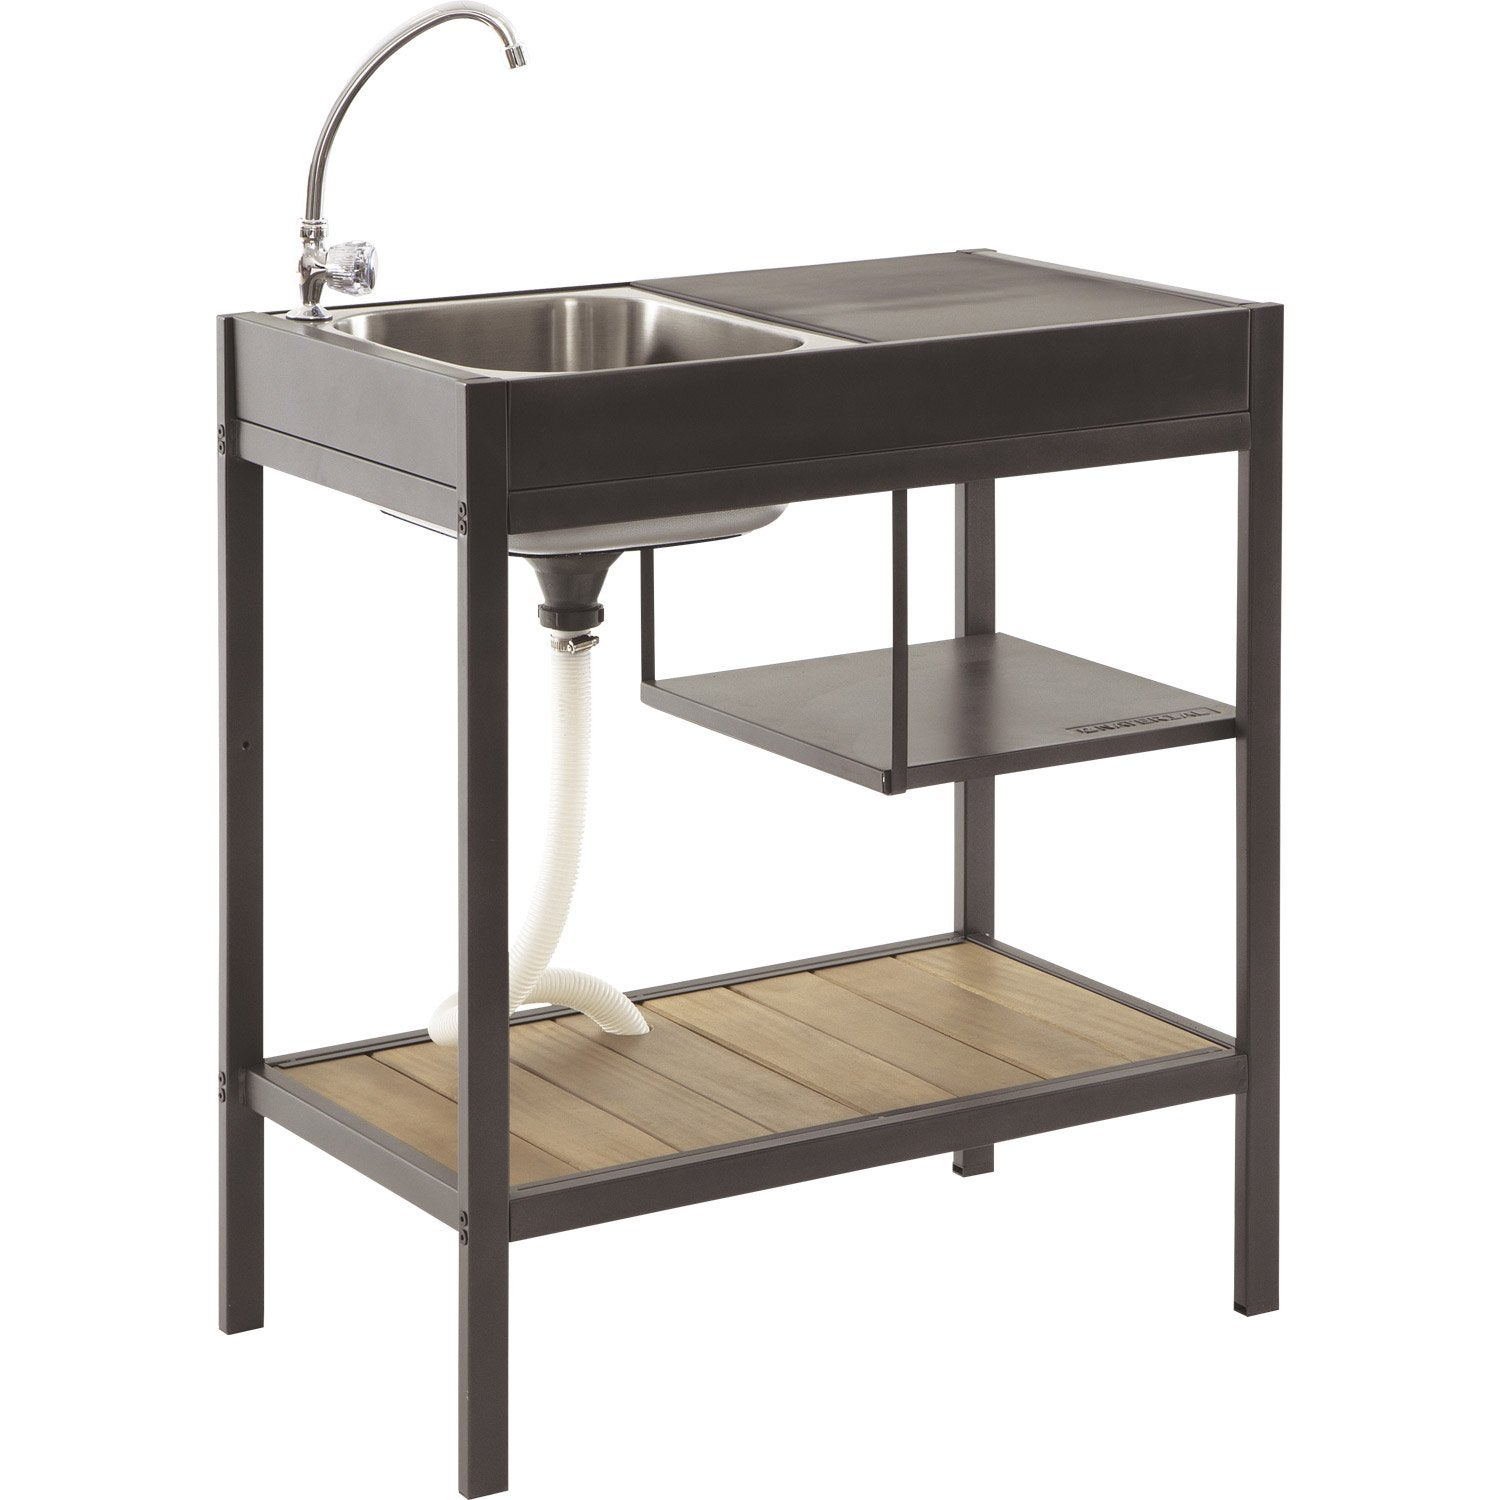 Point d 39 eau naterial cuisine module resort leroy merlin - Meuble de jardin leroy merlin ...